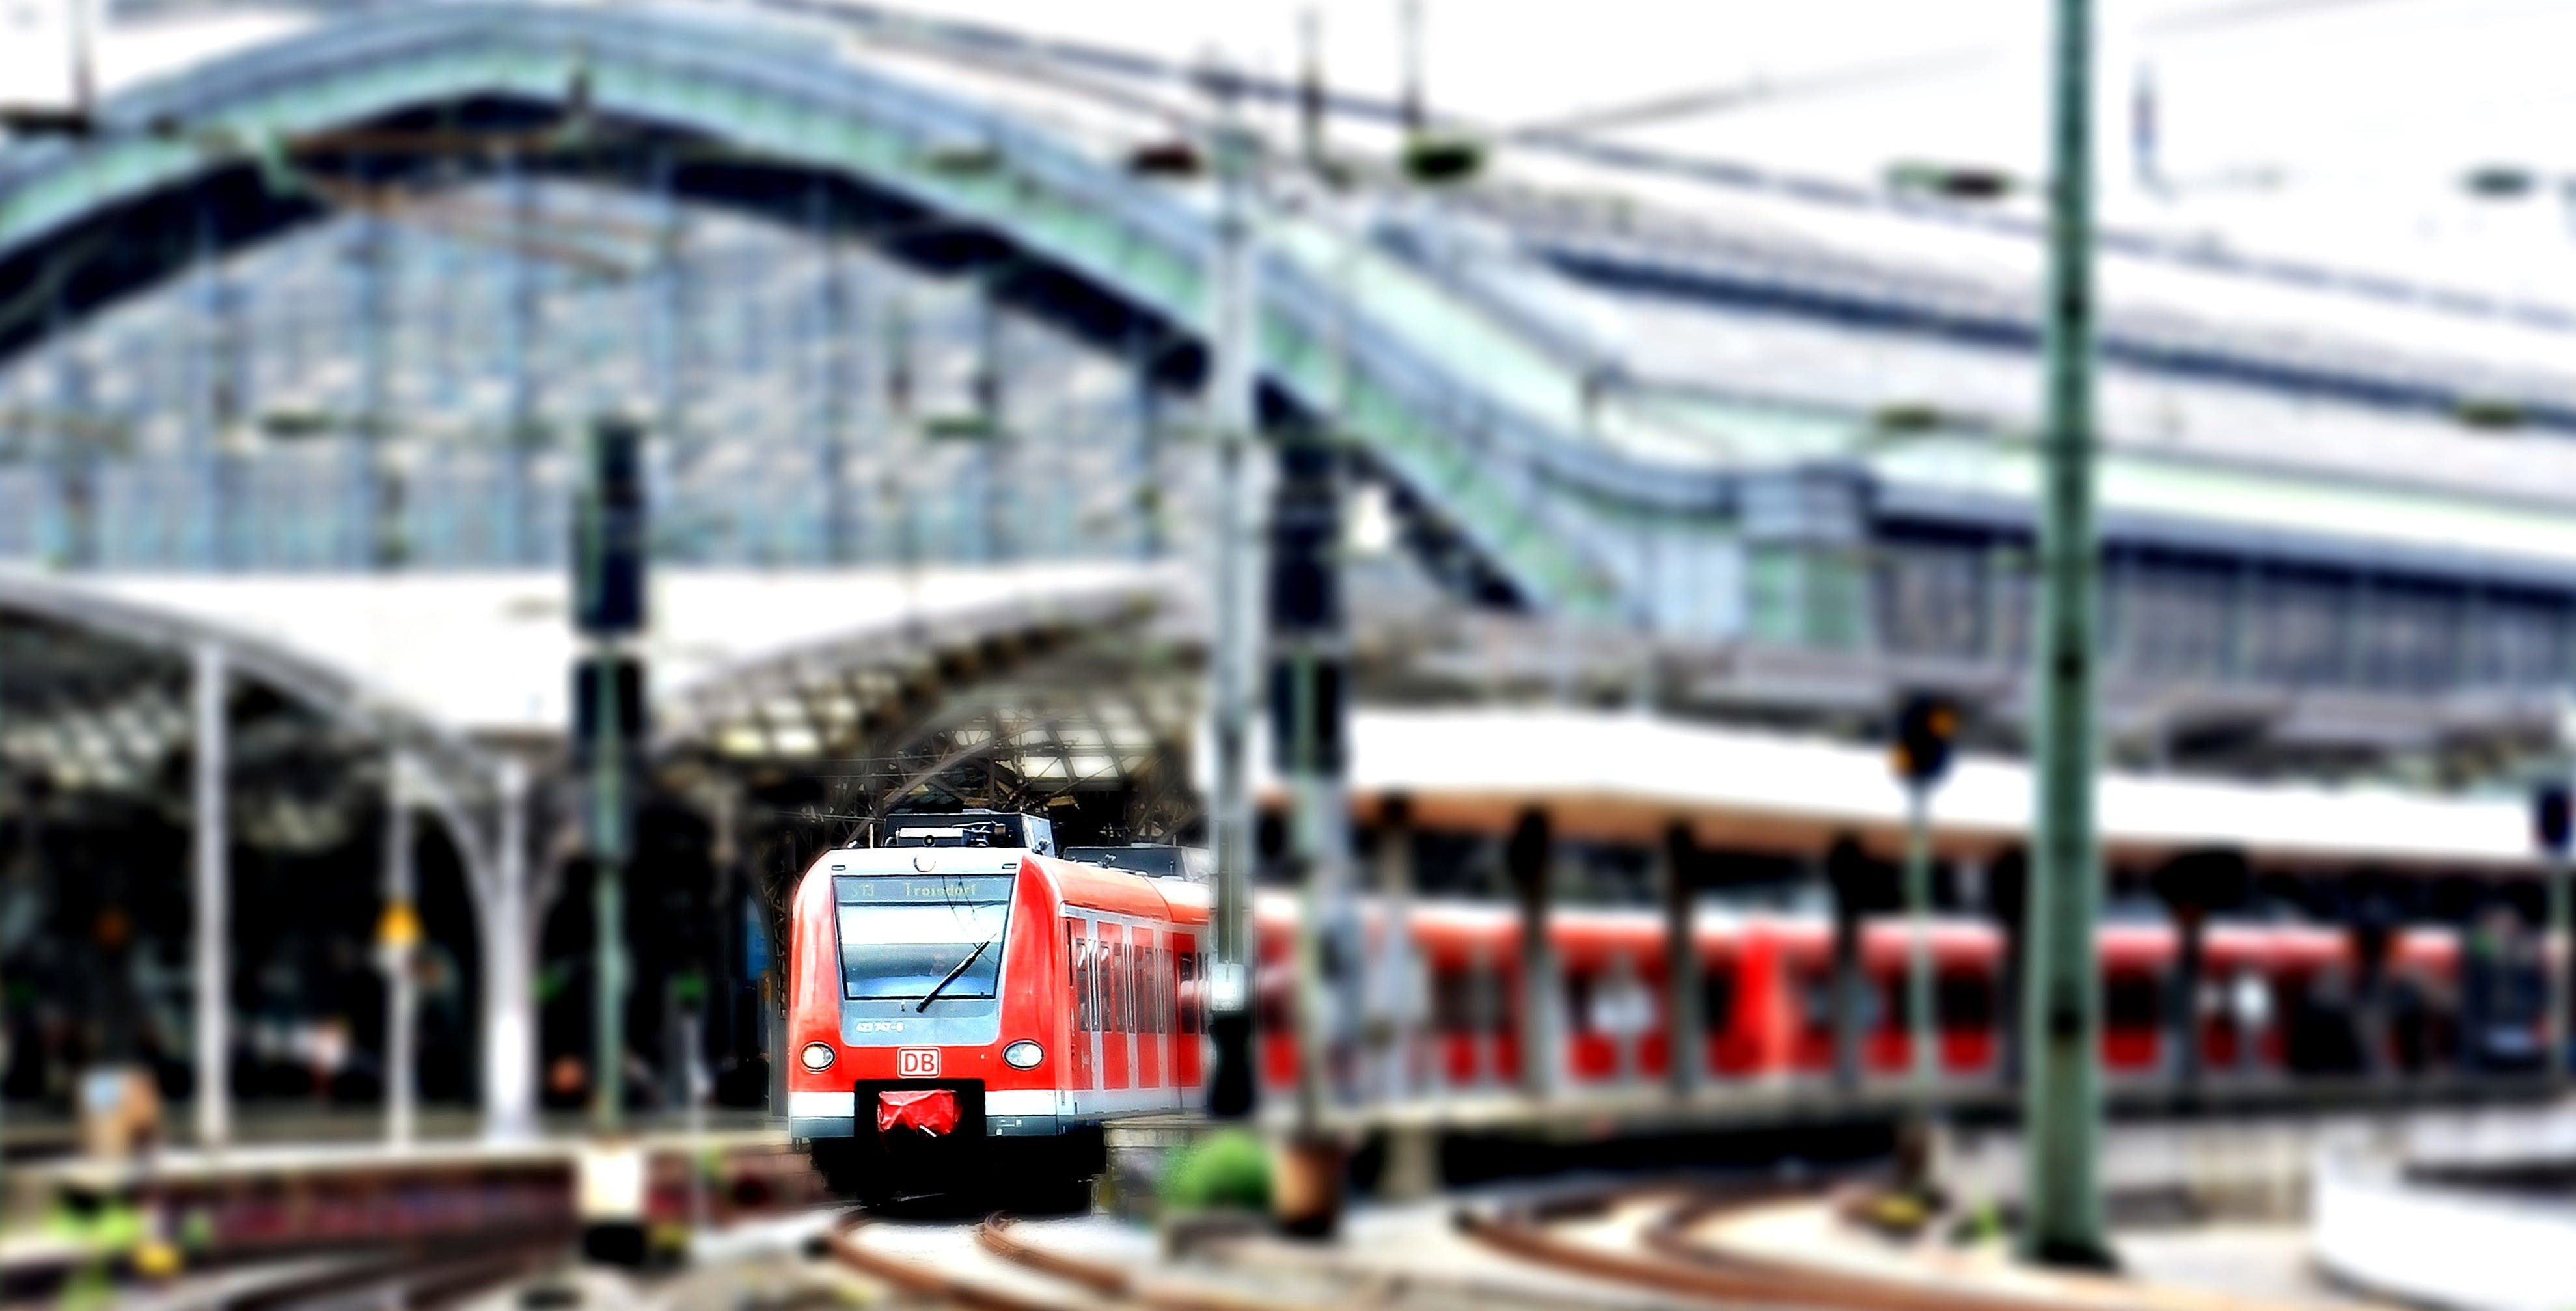 Cologne central station railway station train 163580